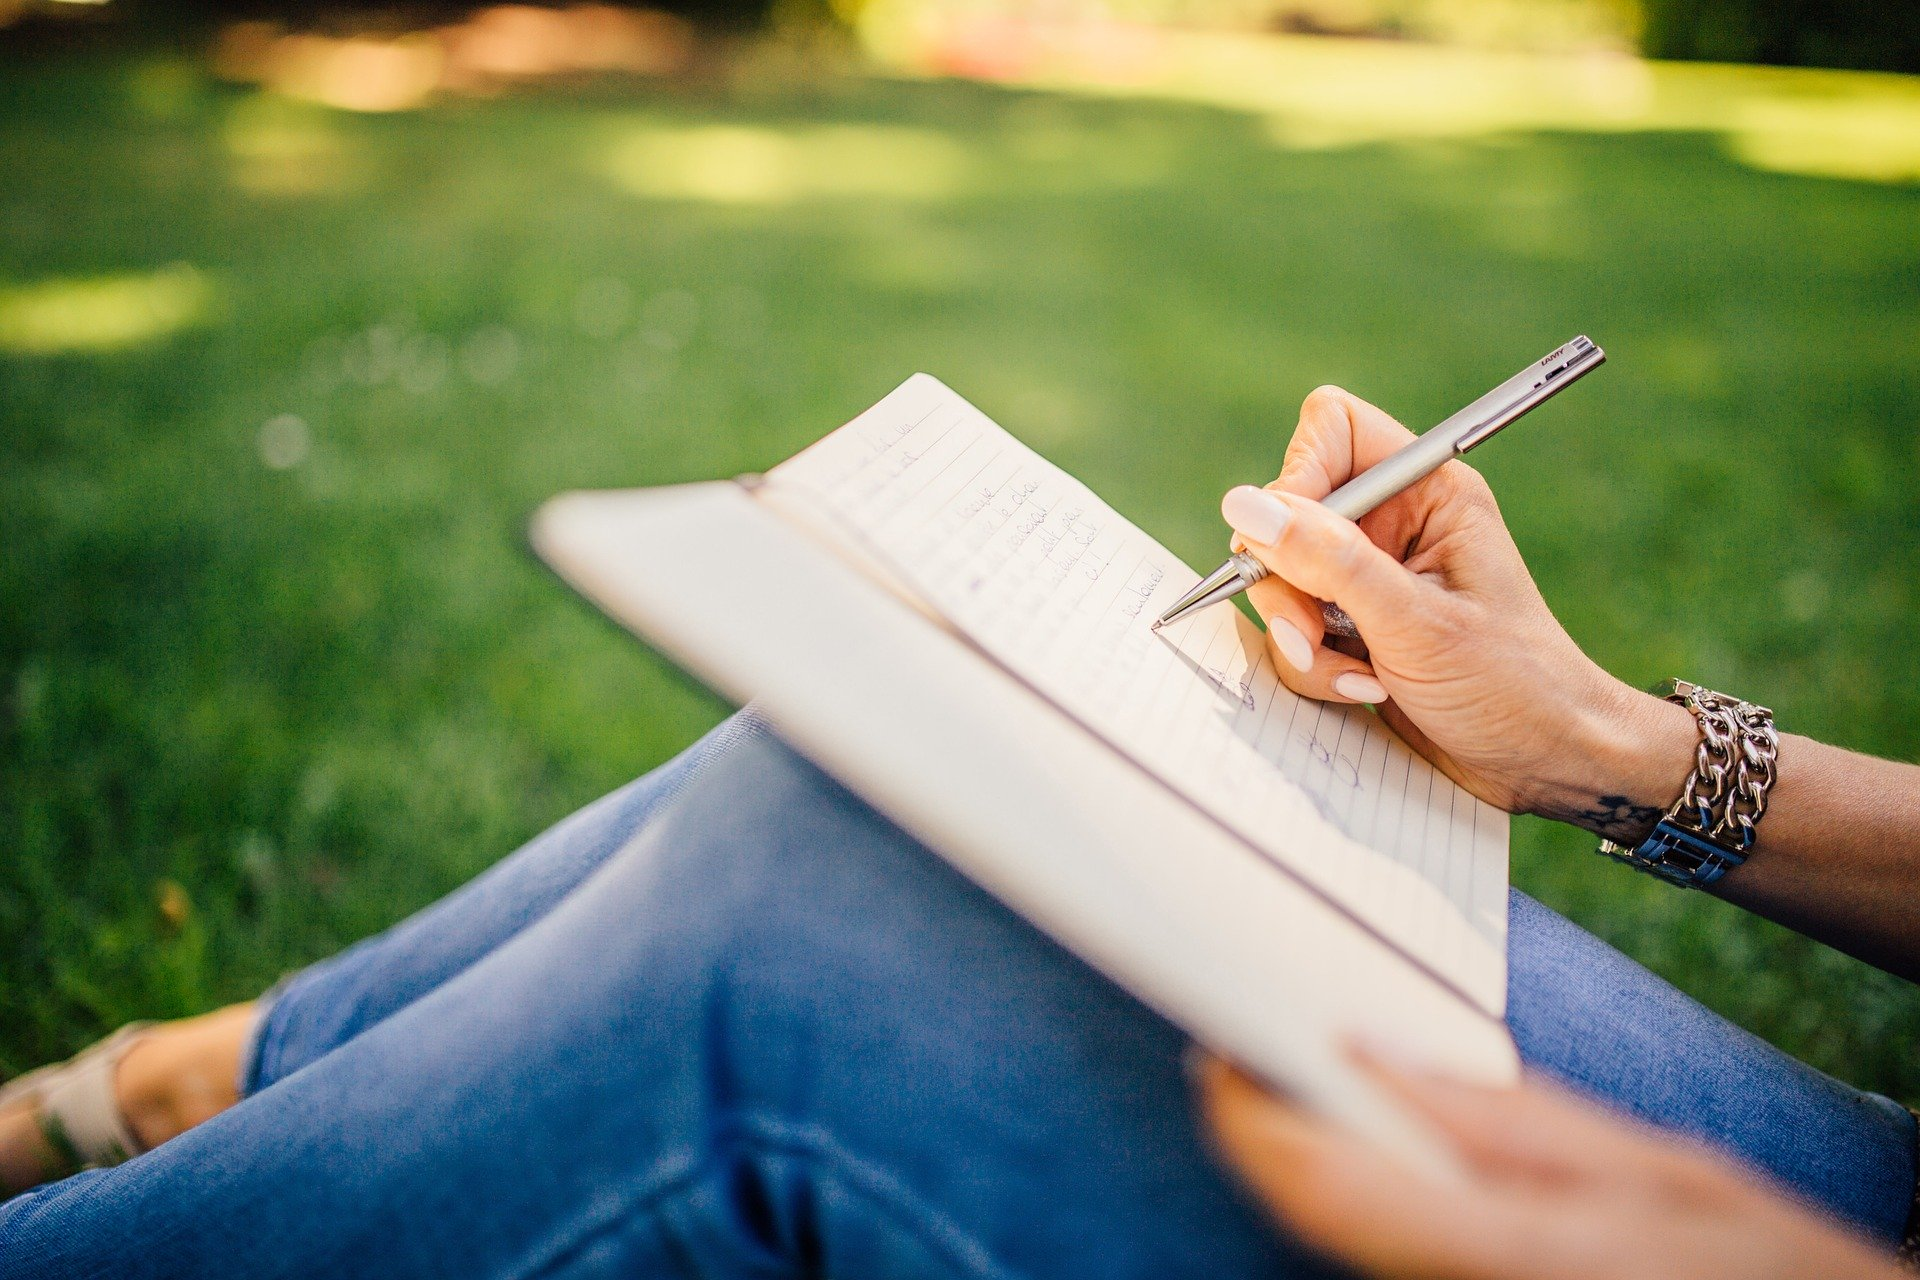 5 Tips For Writing An Excellent Personal Statement